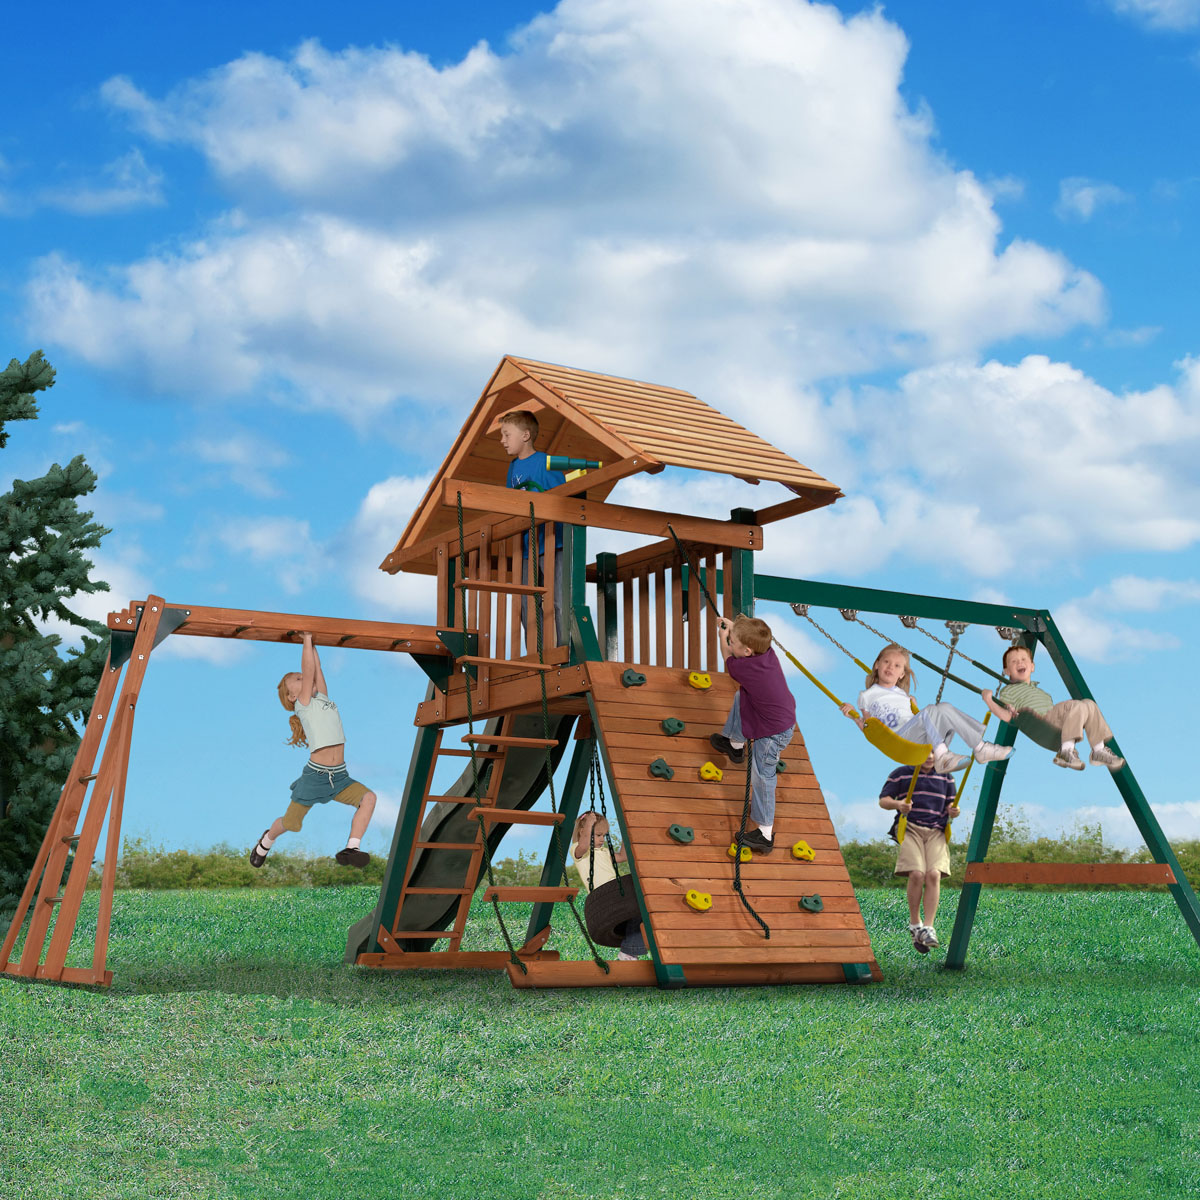 kangaroo kavern wooden playset with monkey bars u0026 tire swing